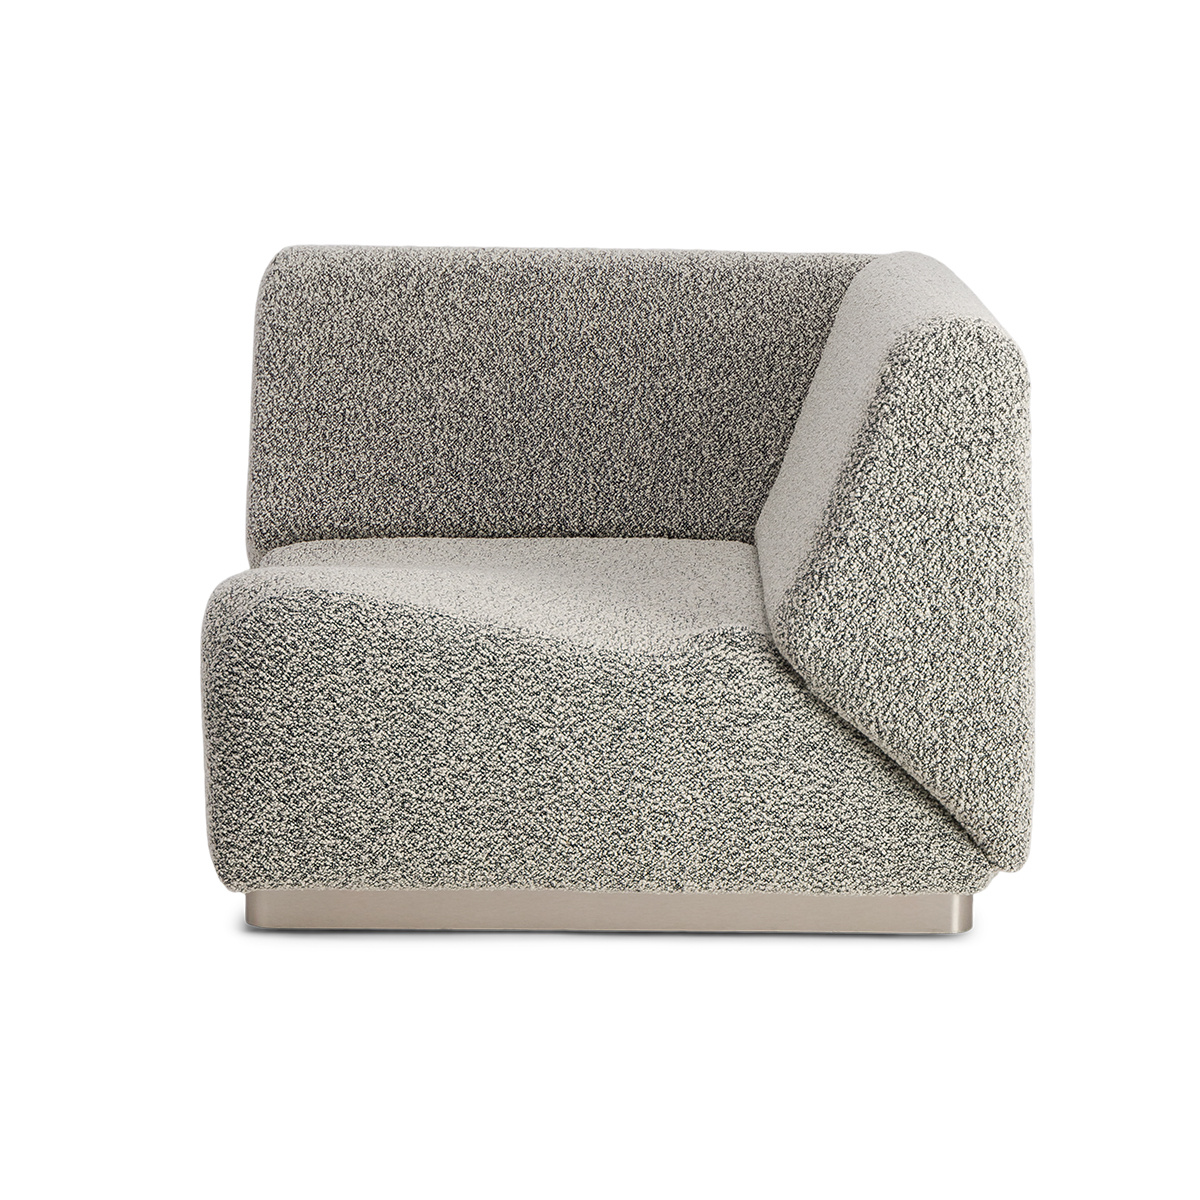 Rotondo Corner Fireside Chair in Black and White Curly Wool